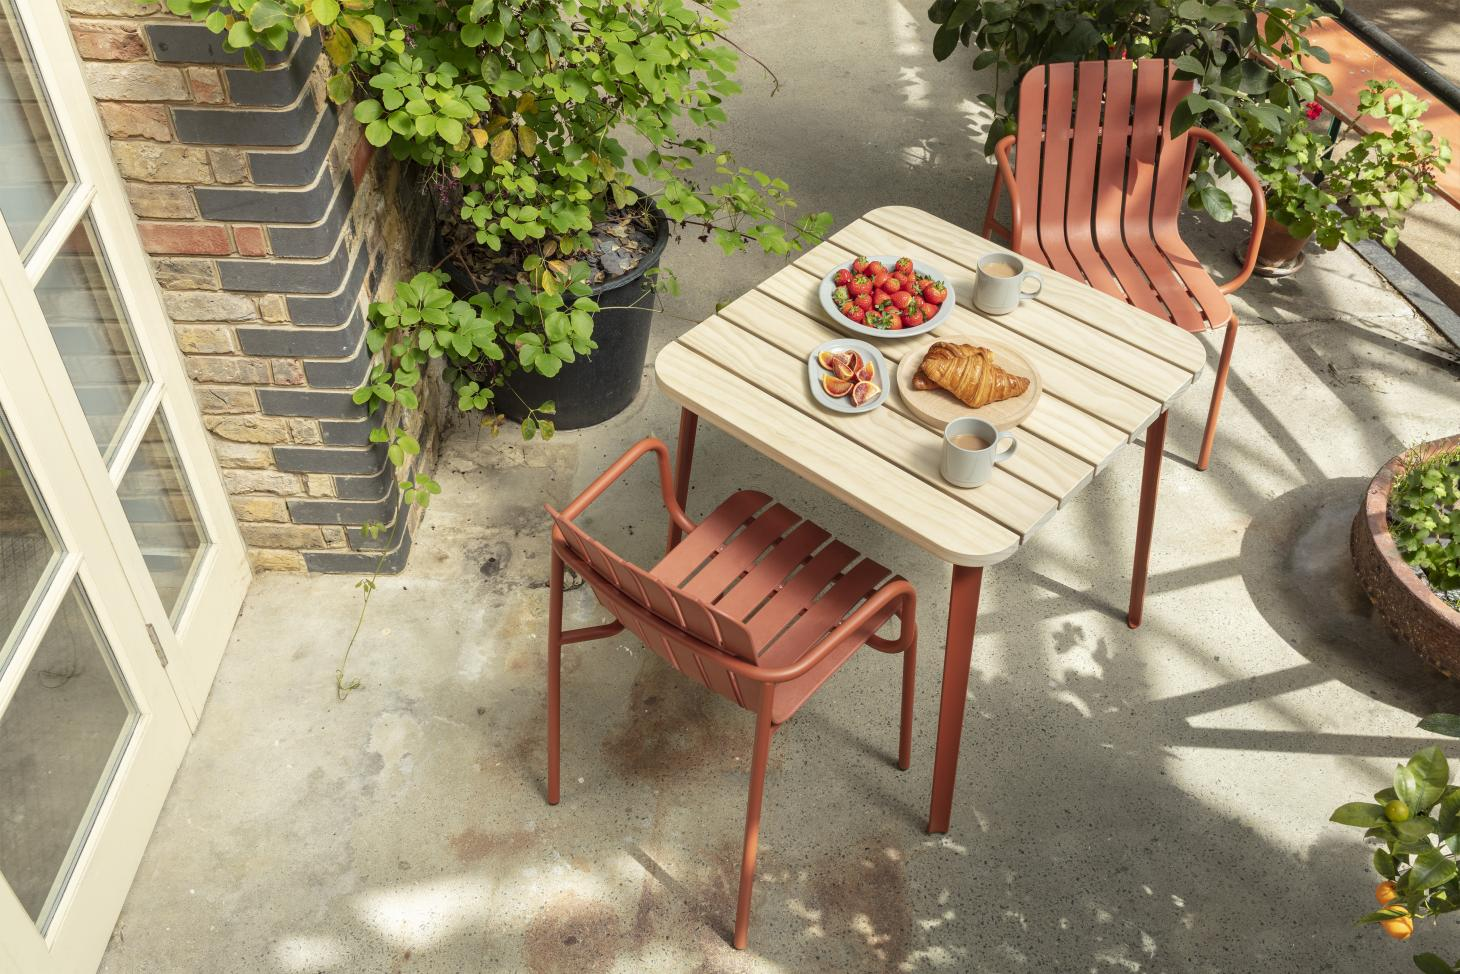 Sustainable outdoor furniture by Very Good and Proper in red, including a chair with recycled and hemp fiber seat and Accoya wood table top